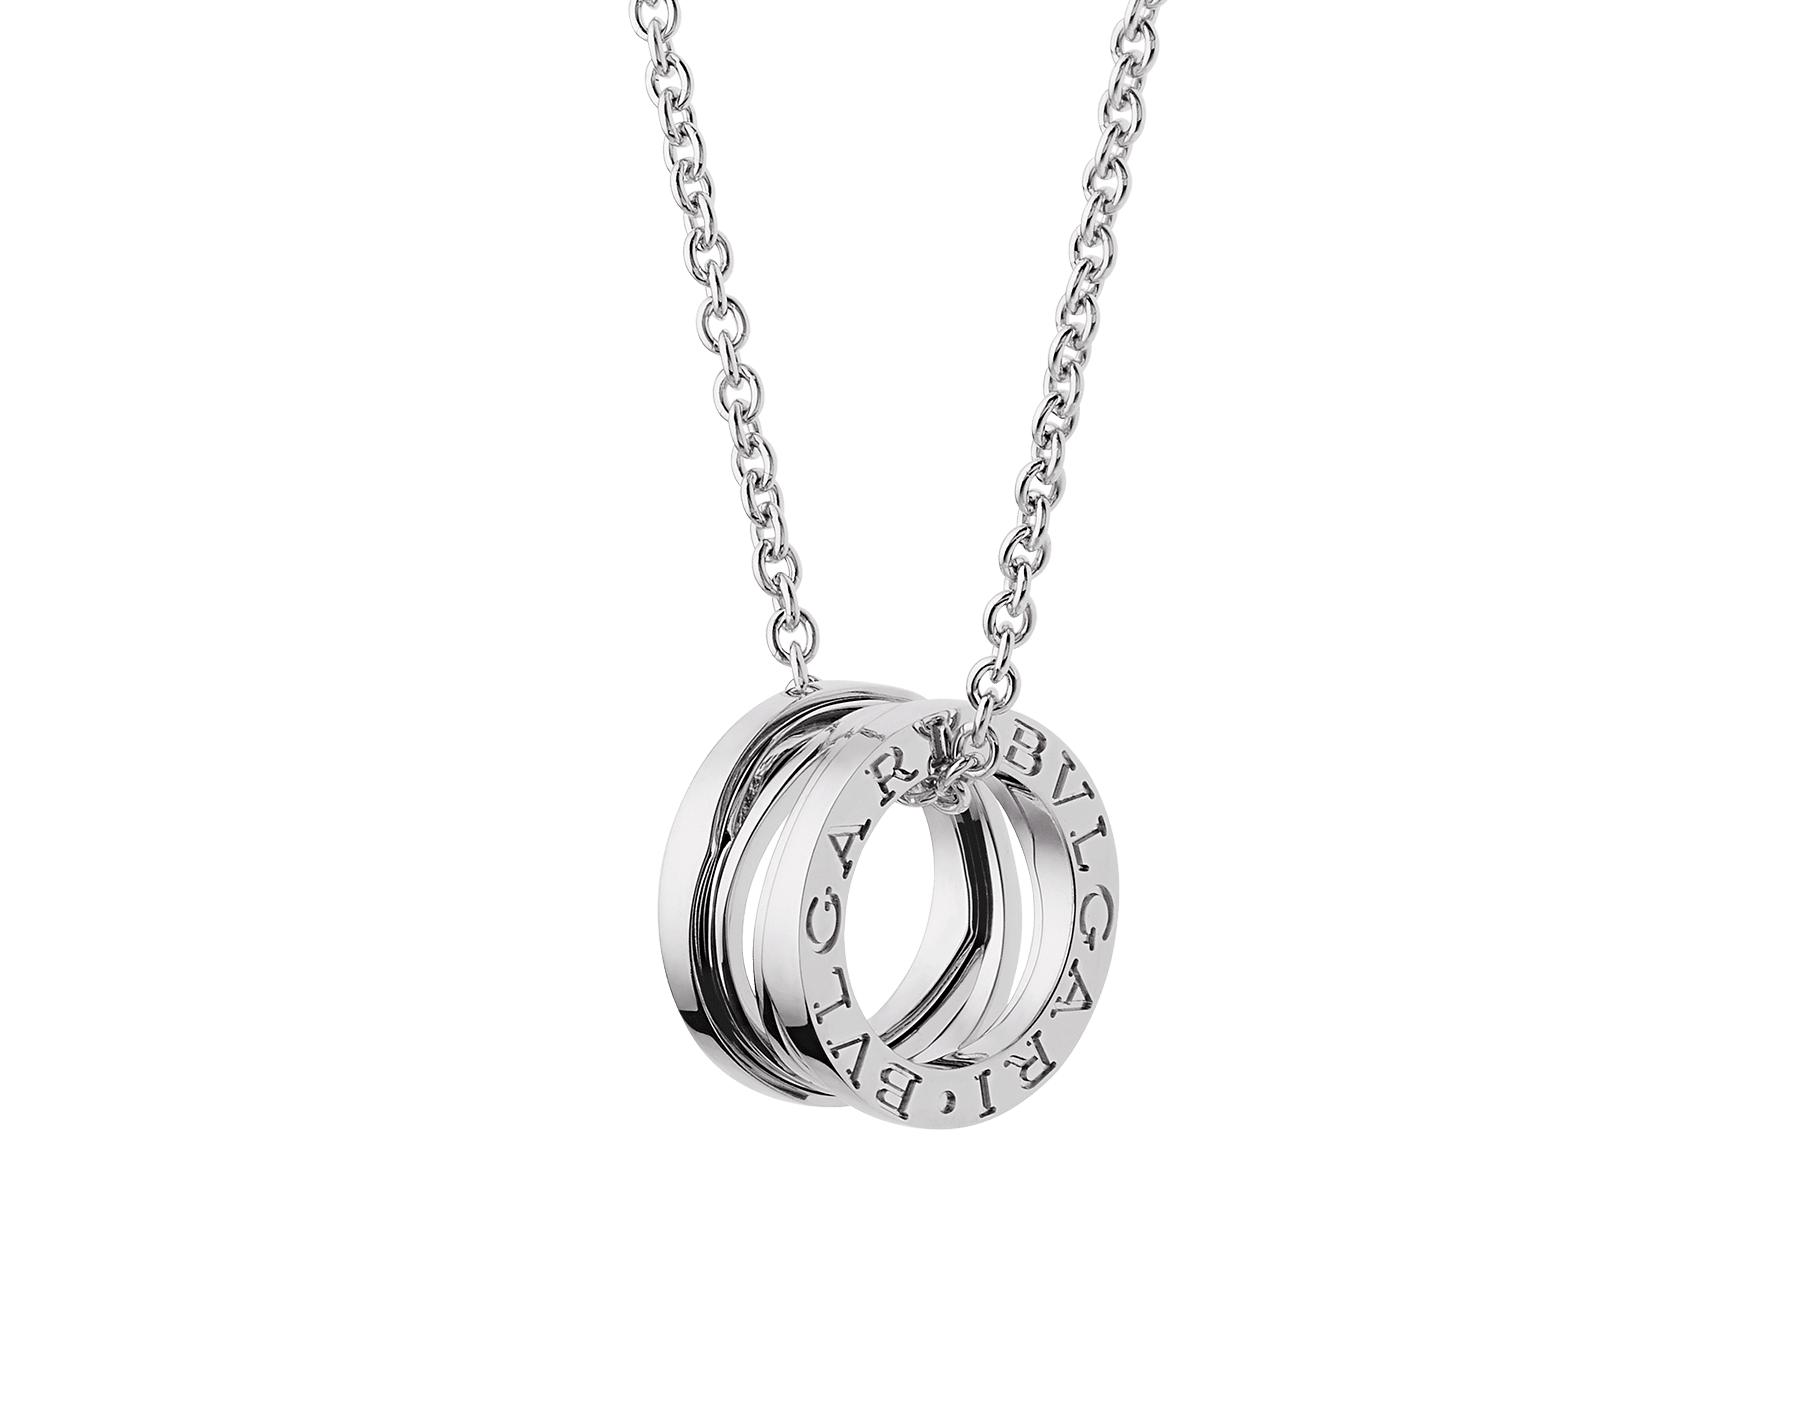 B.zero1 Design Legend necklace with 18 kt white gold chain and 18 kt white gold pendant. 354611 image 1